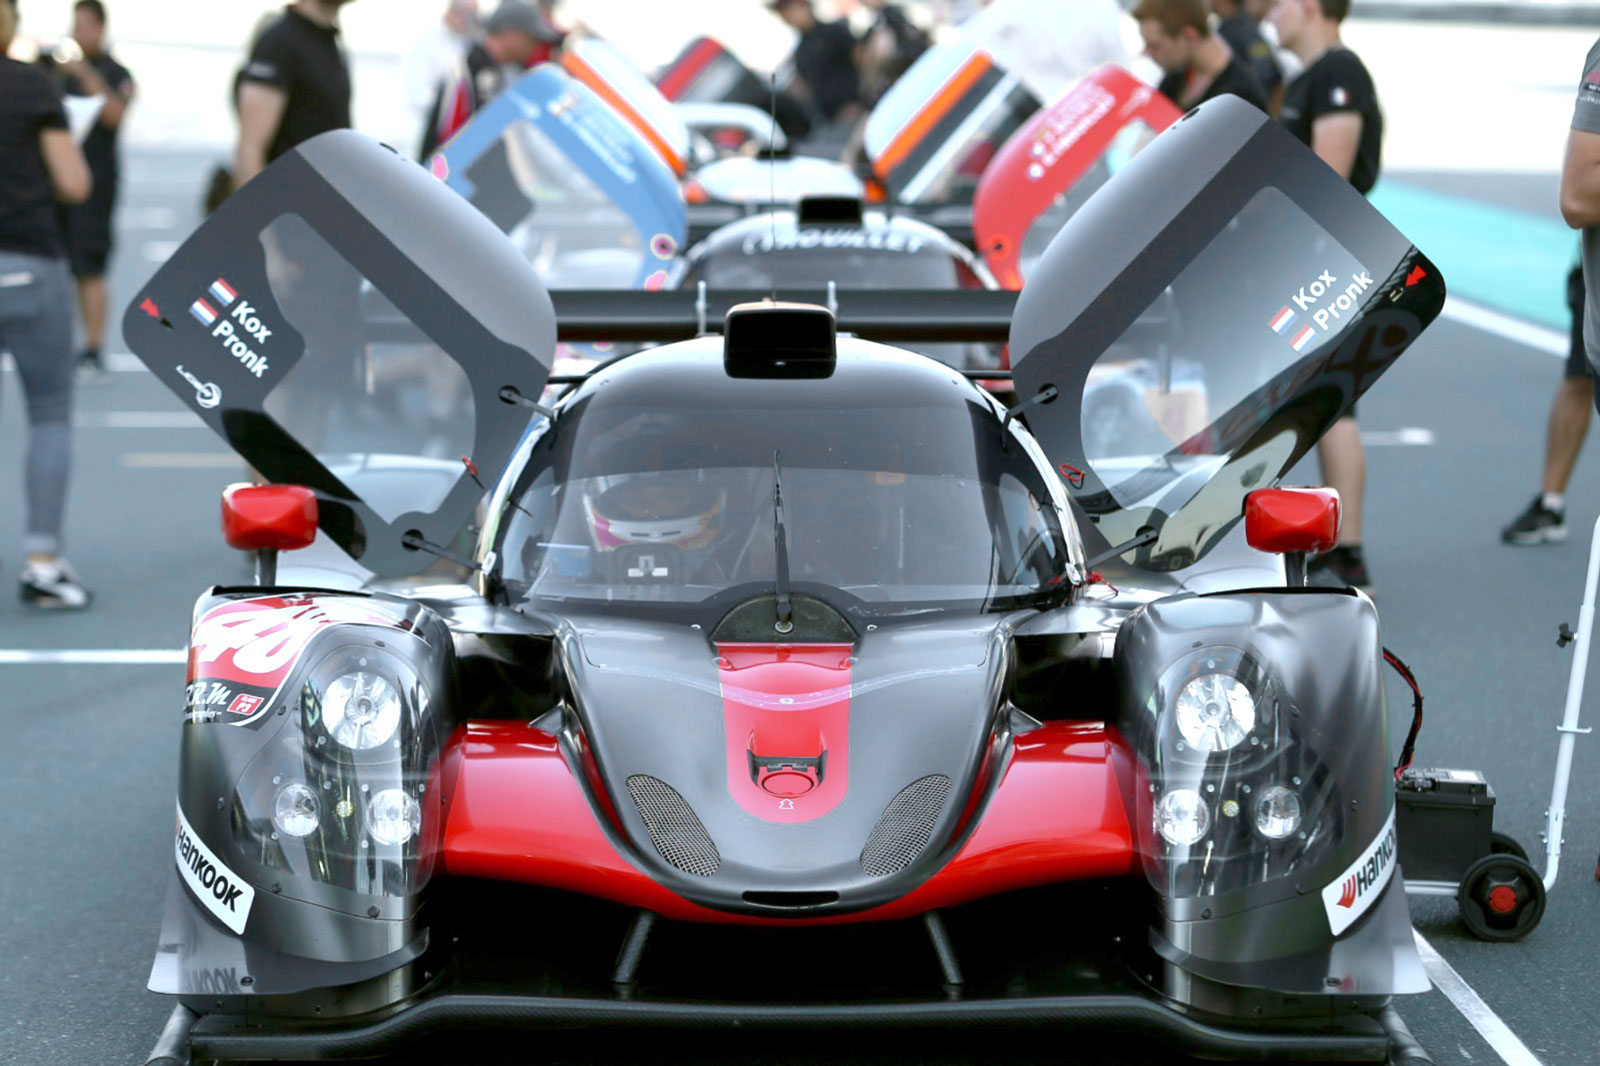 Kox Racing enters Le Mans Cup